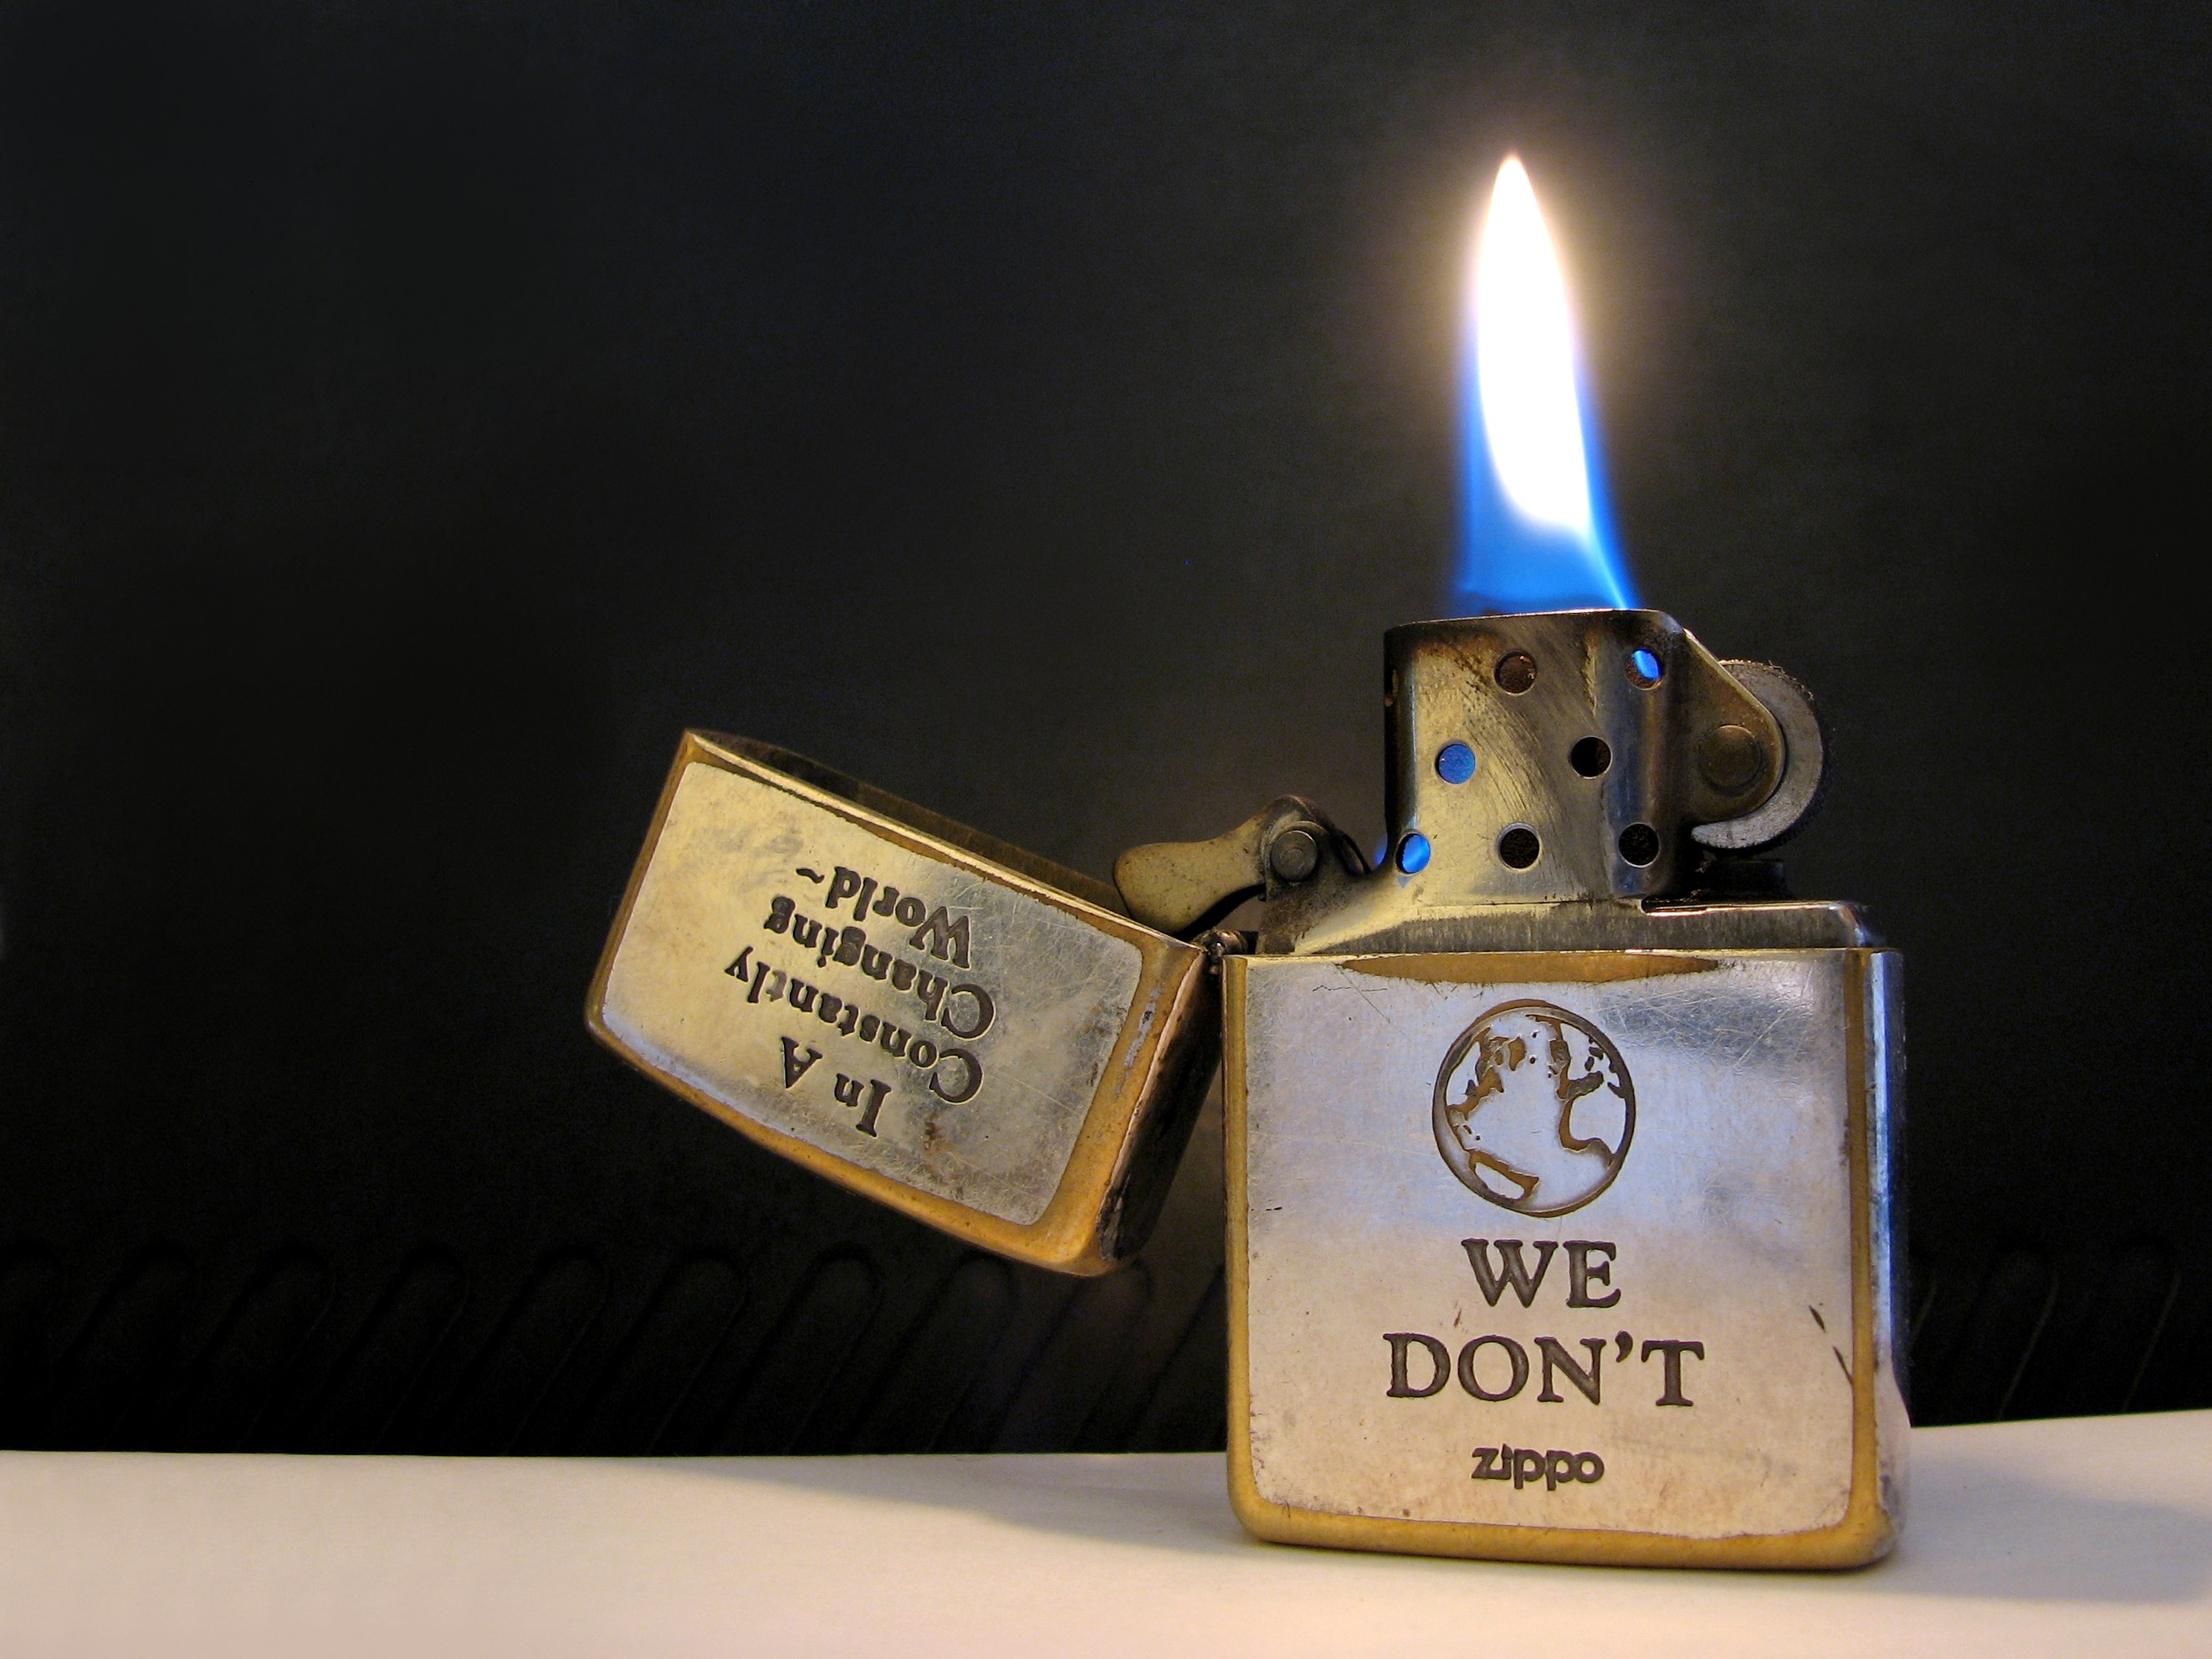 File:Zippo light.jpg - Wikipedia, the free encyclopedia